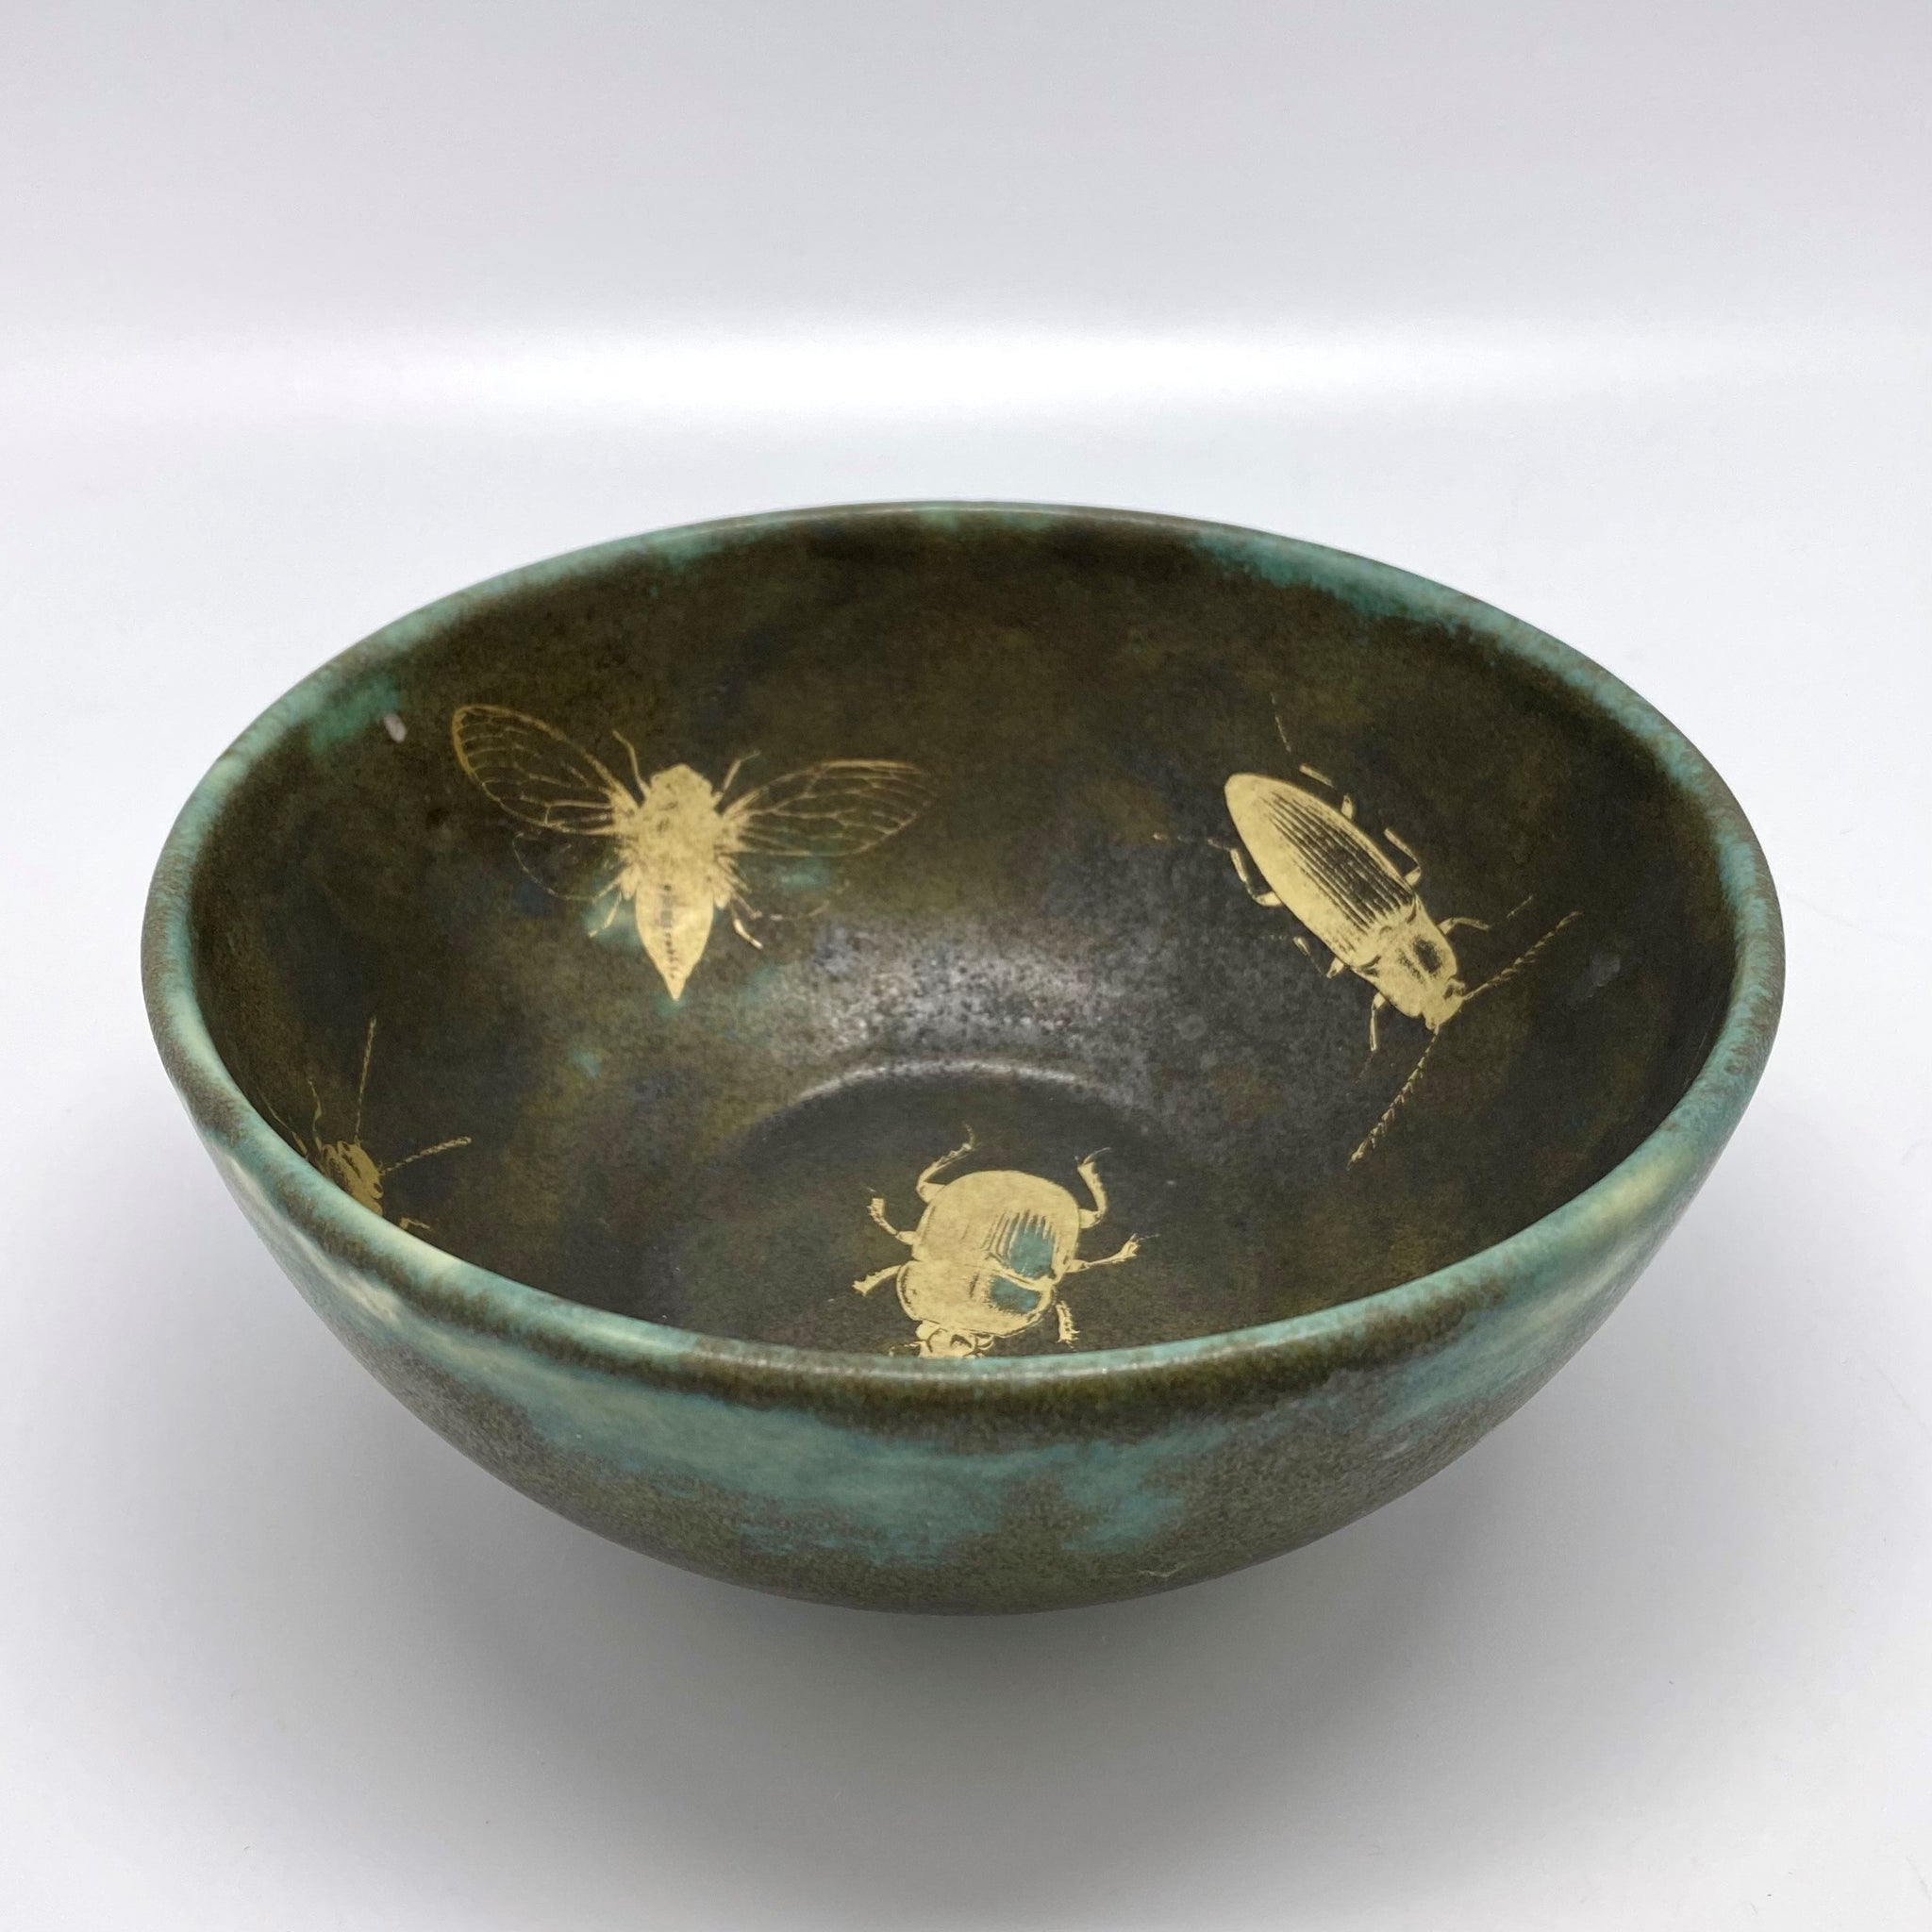 A small moss green bowl with golden bugs